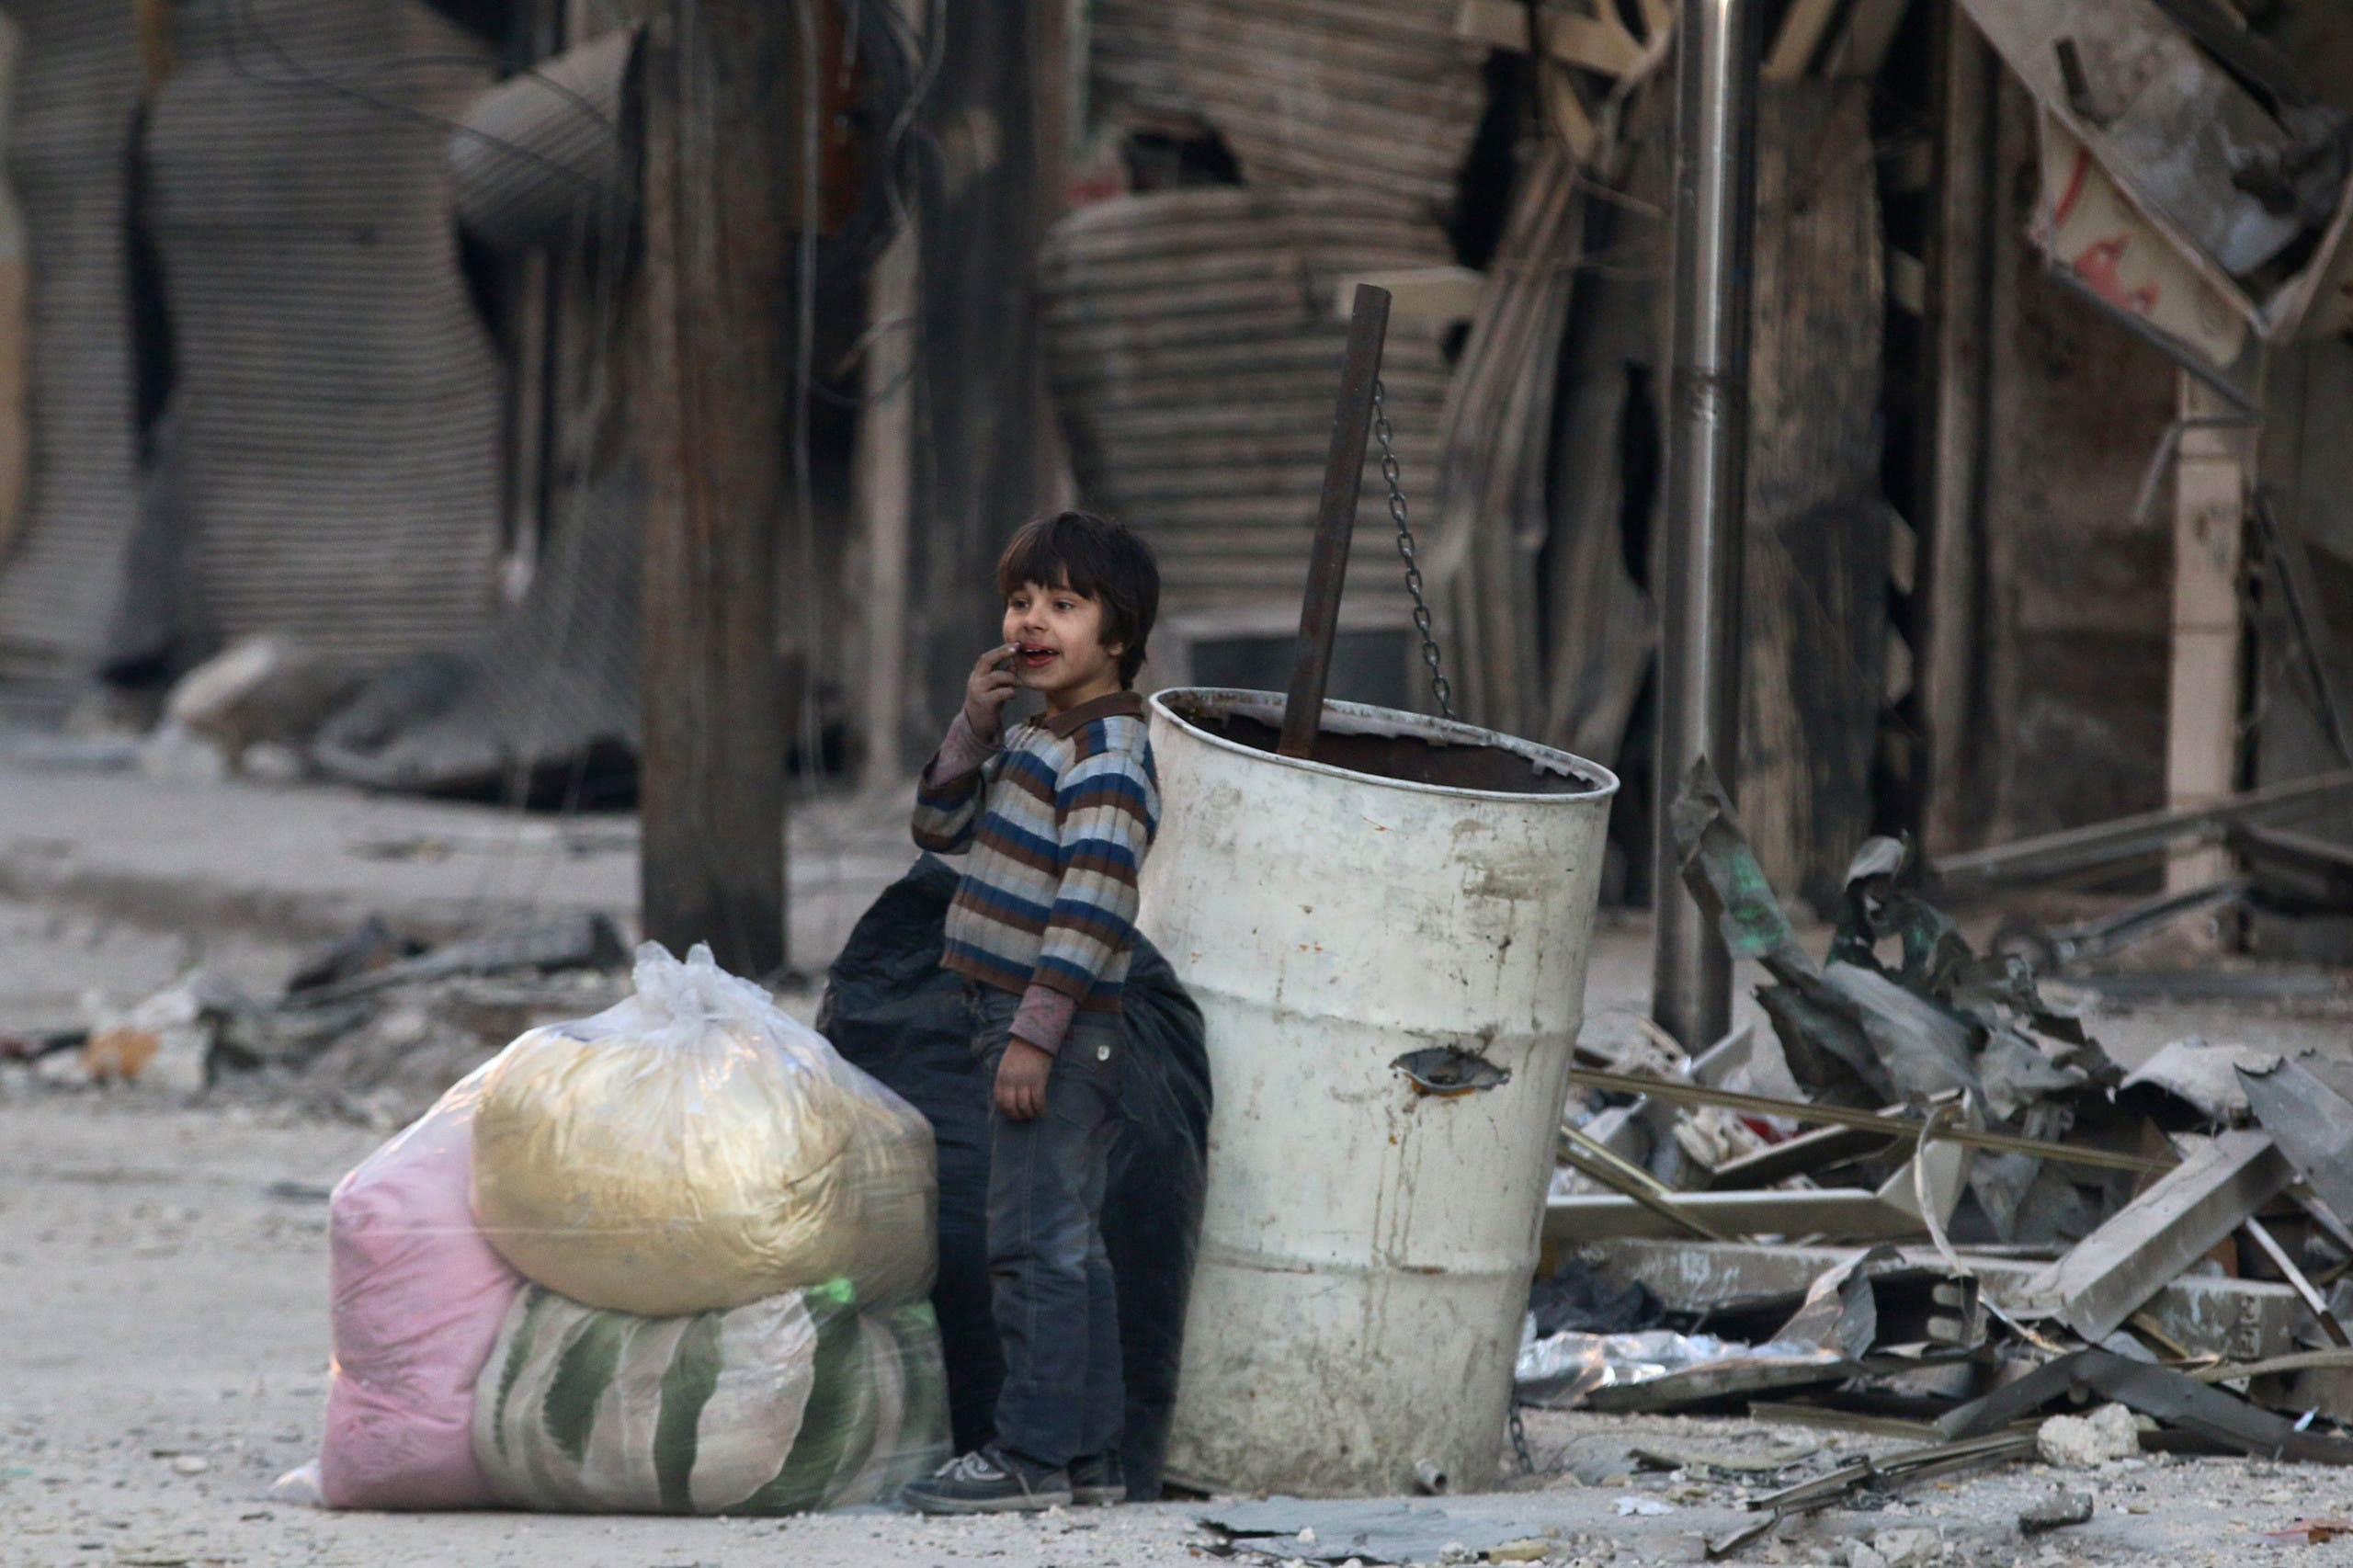 A boy stands amid the damage in the rebel-held besieged al-Shaar neighborhood of Aleppo, Syria November 23, 2016. REUTERS/Abdalrhman Ismail